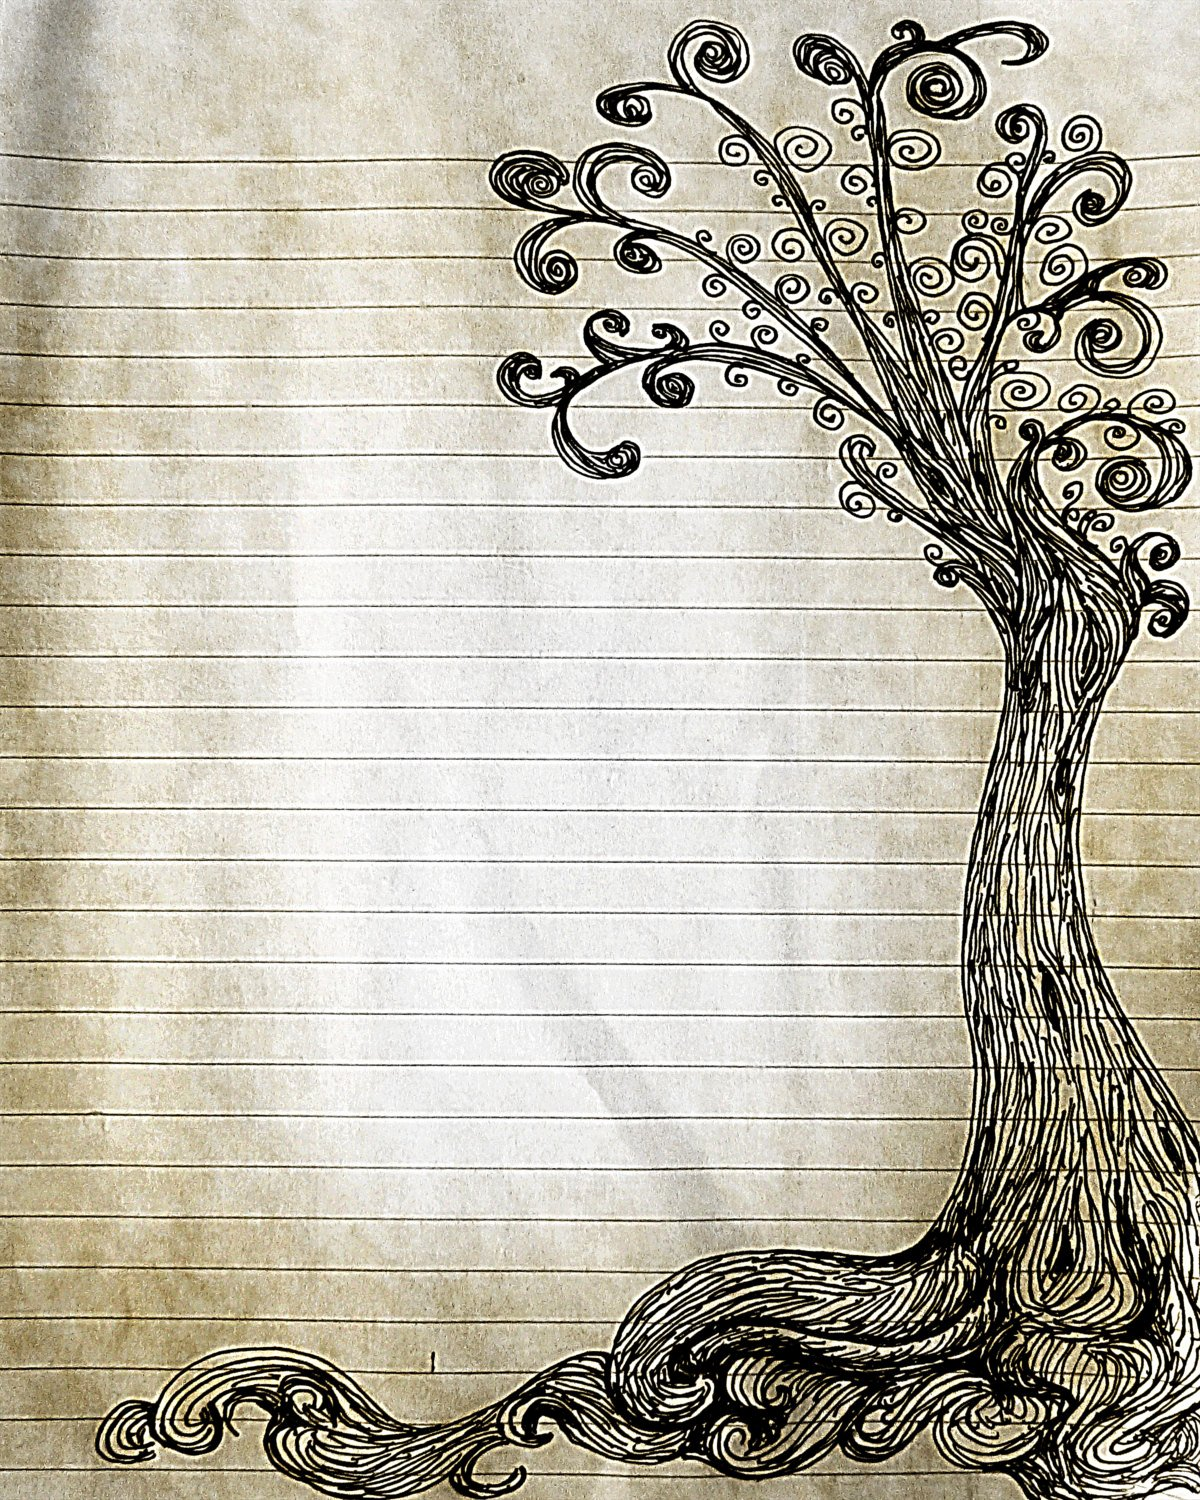 Lined Writing Paper Inspirational Printable Pen and Ink Tree Drawing Lined Journal Page Digital